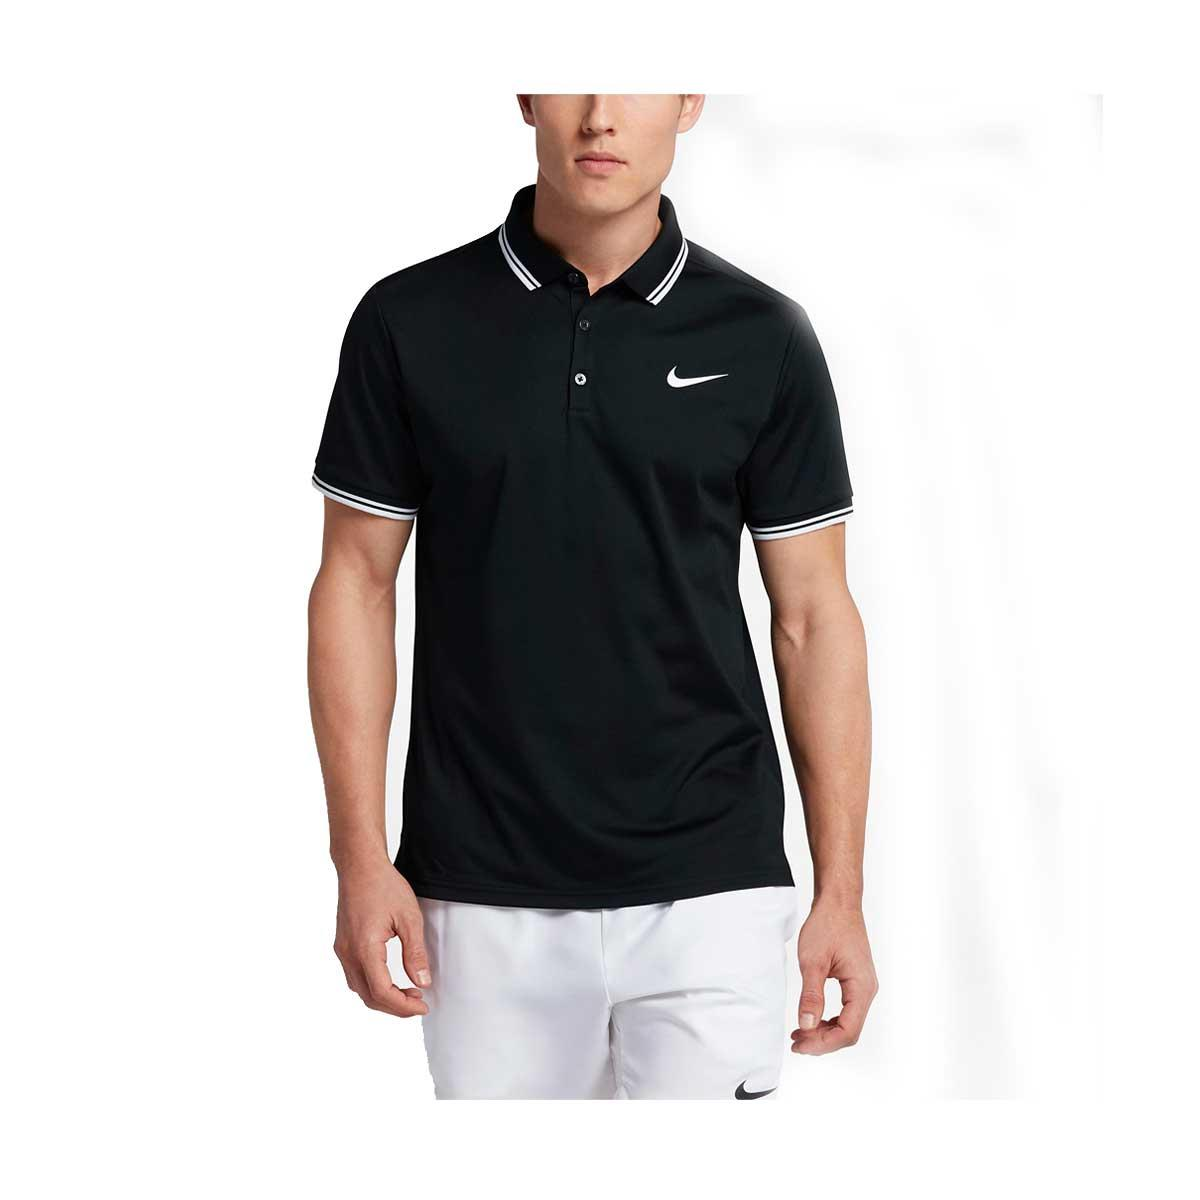 d355f26c2 Camisa Polo Nike Court Dry Solid Masculino